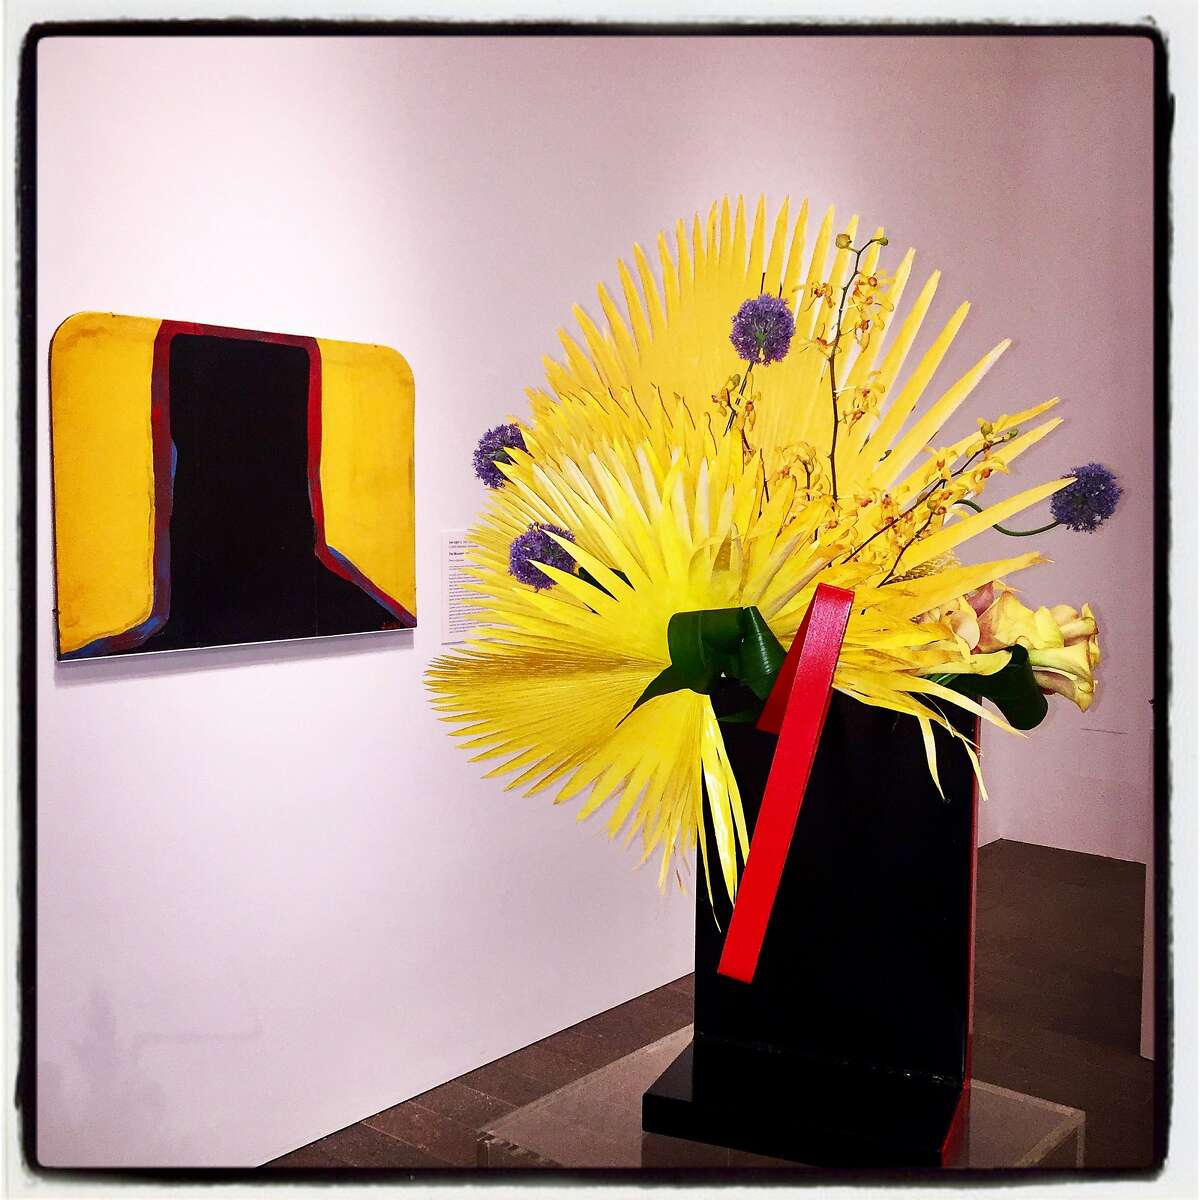 """A Bouquets to Art floral tribute by Heather Dunne and the Orinda Floral Club pays homage to """"Flat Mountain"""" by artist Joe Light at the de Young Museum on March 12, 2018."""